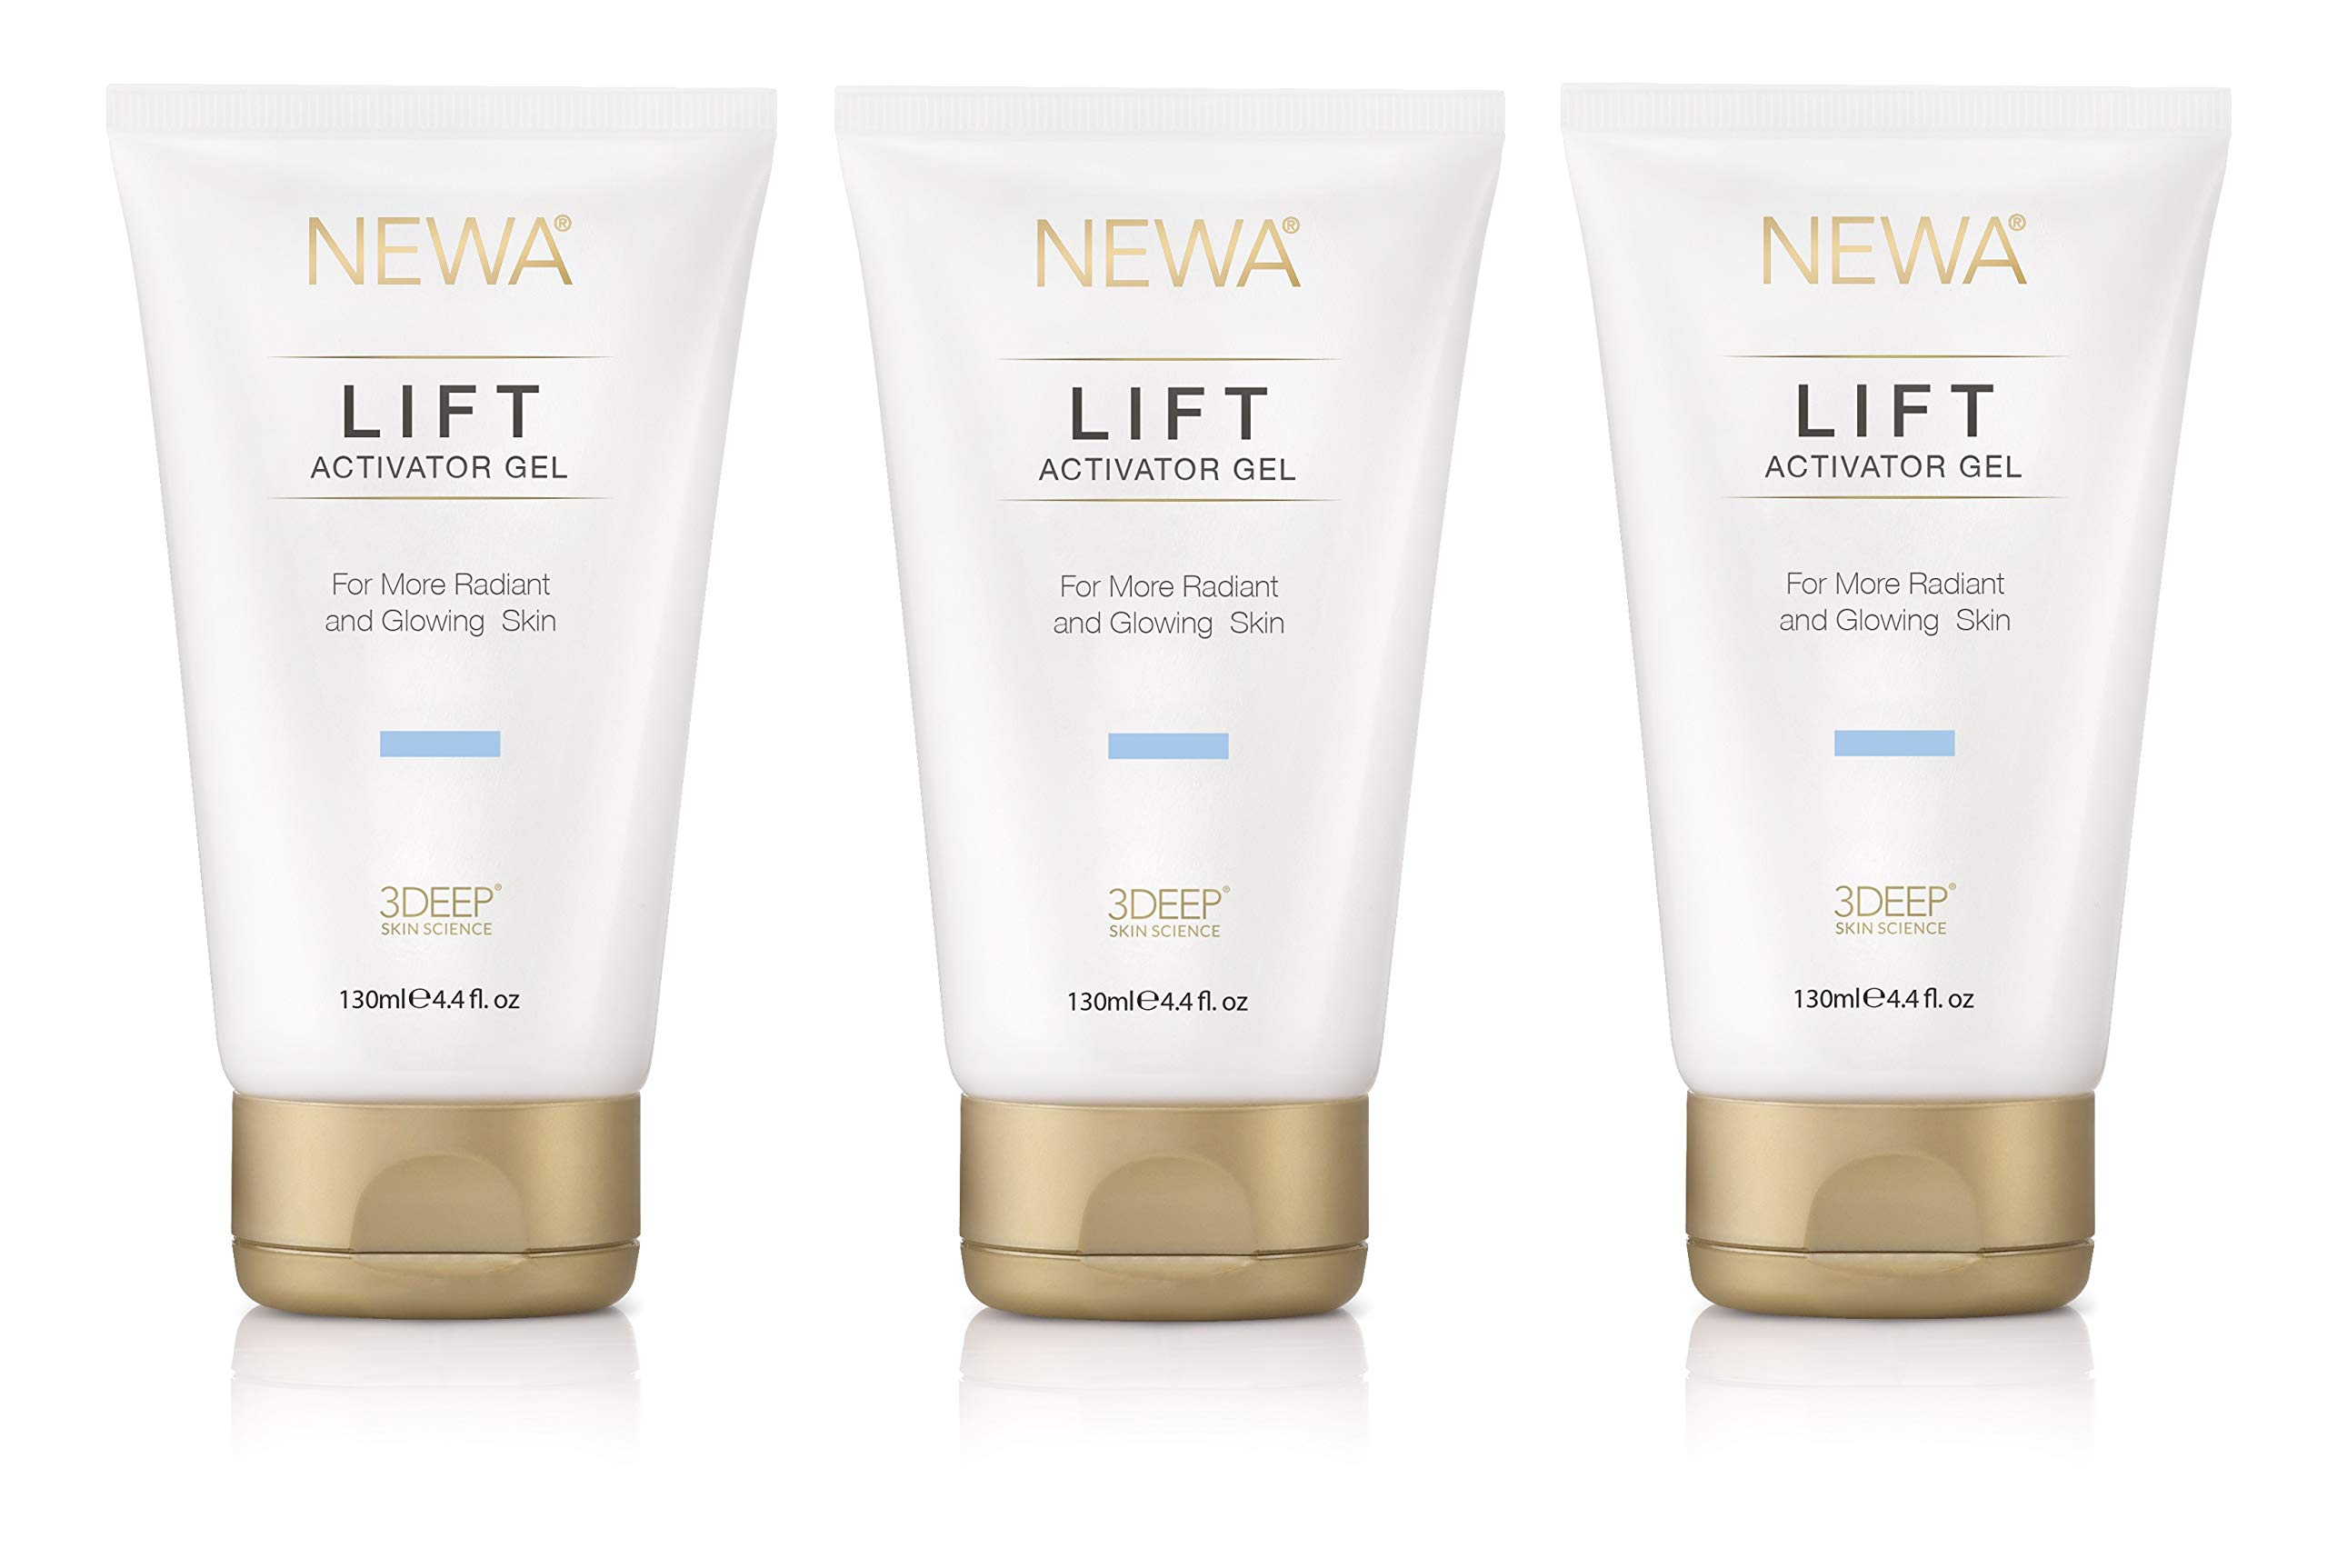 NEWA Specially Formulated Activator Gel [3 Pack] for use with The NEWA Skin Care System by NEWA